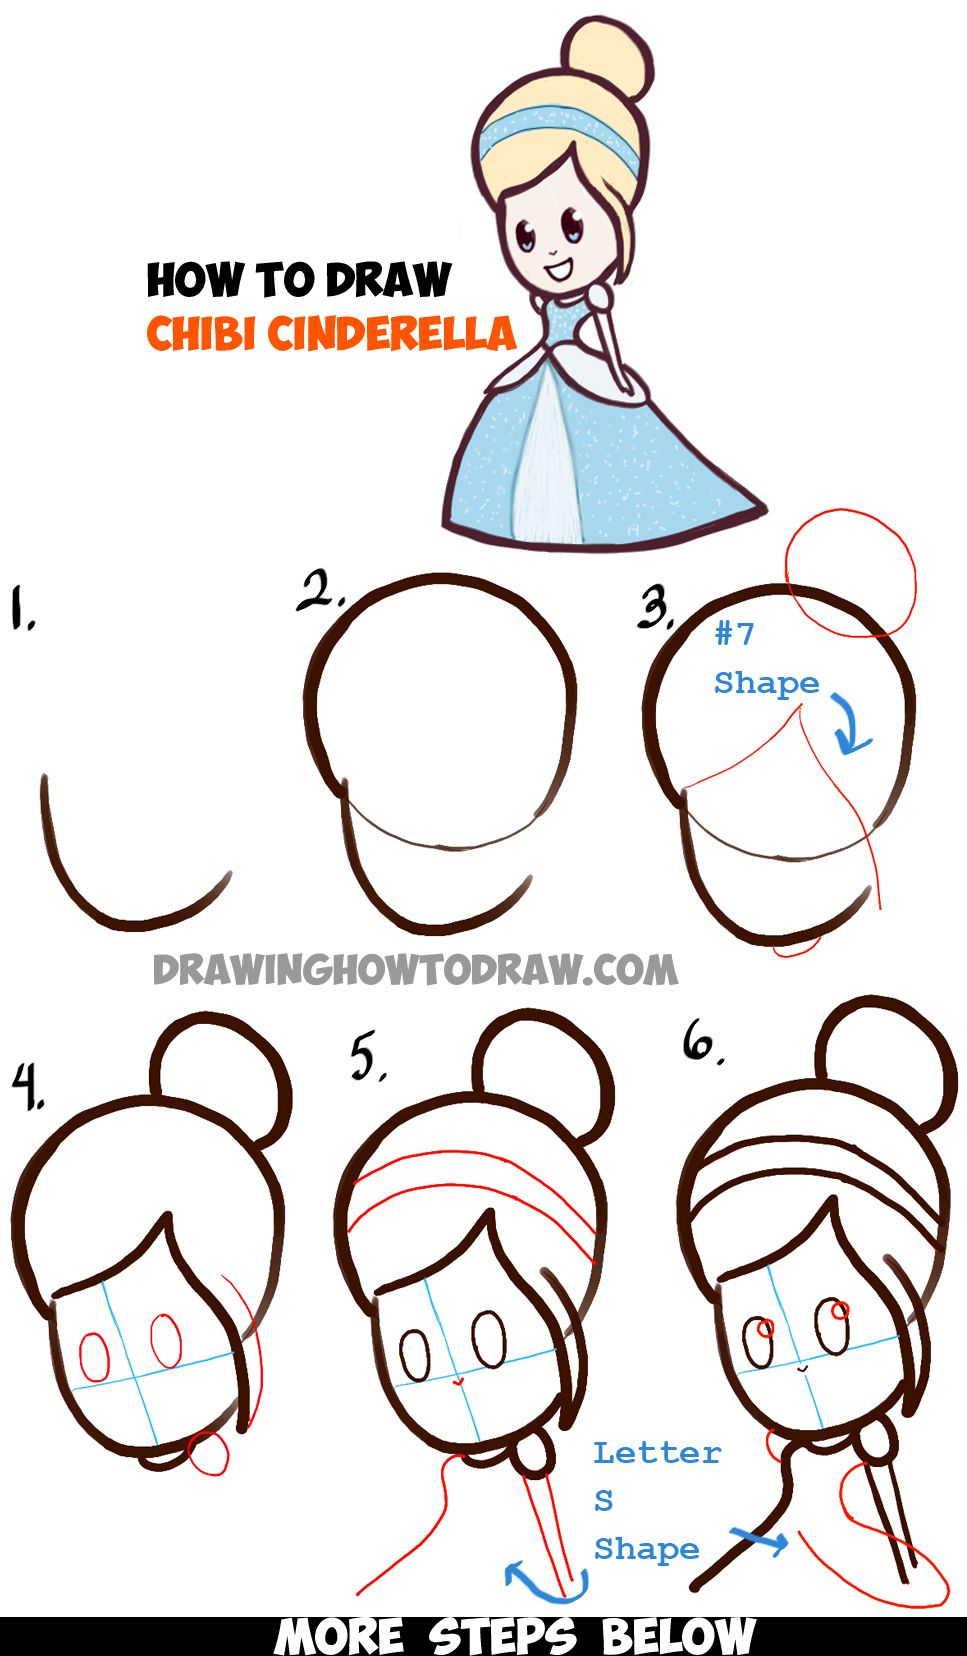 How To Draw Cute Baby Chibi Cinderella Easy Step By Step Drawing Tutorial How To Draw Step By Step Drawing Tutorials Cute Drawings Drawing Tutorial Cartoon Drawings